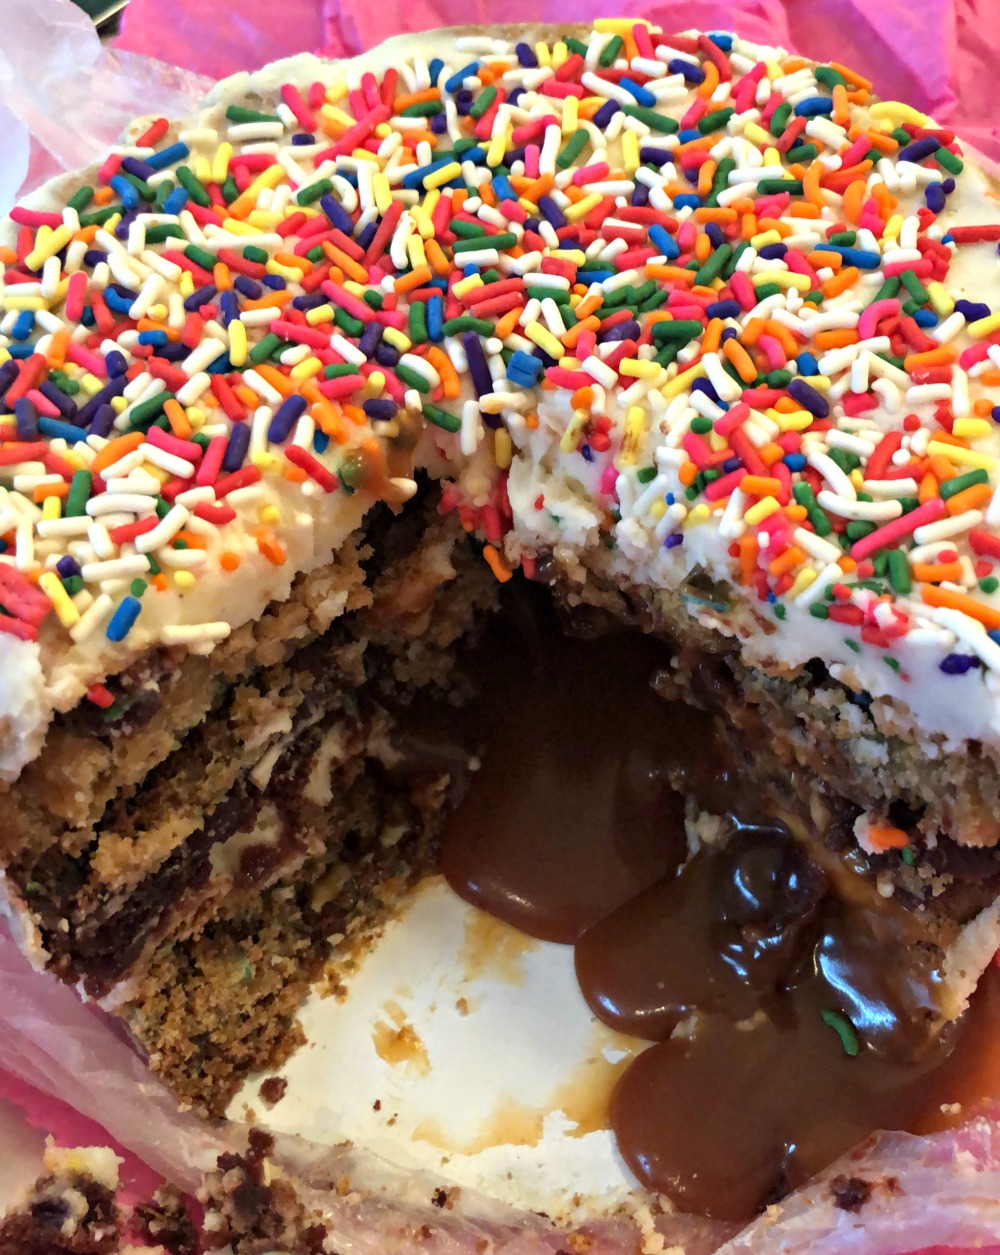 Fatty Cakes -- the absolute best dessert you've ever tried - Alyson's Current Favorites // July 2018 featured by popular Florida lifestyle blogger The Modern Savvy